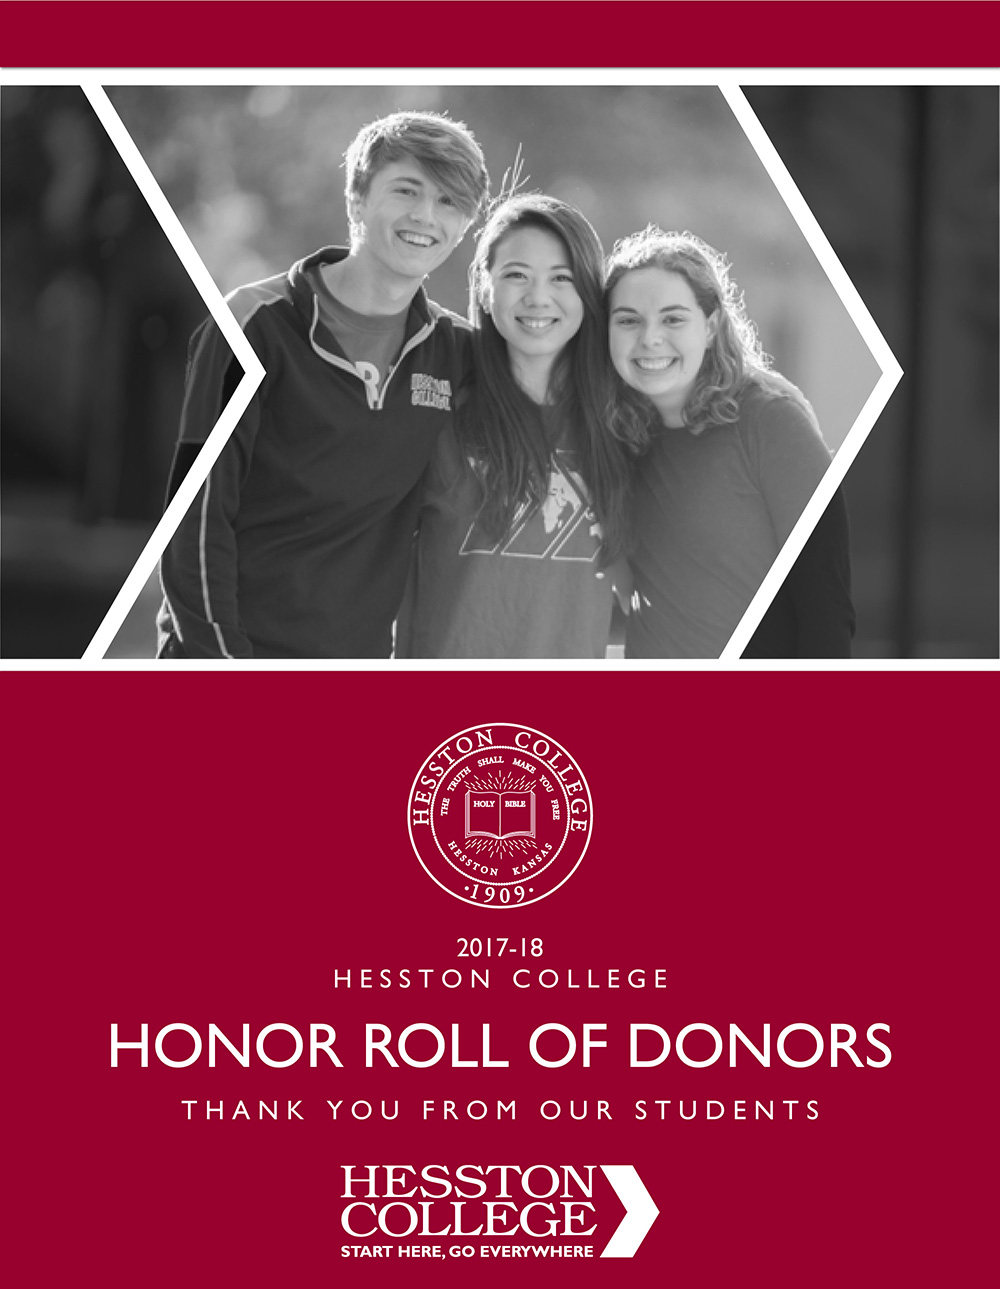 2017-18 Hesston College Honor Roll of Donors cover